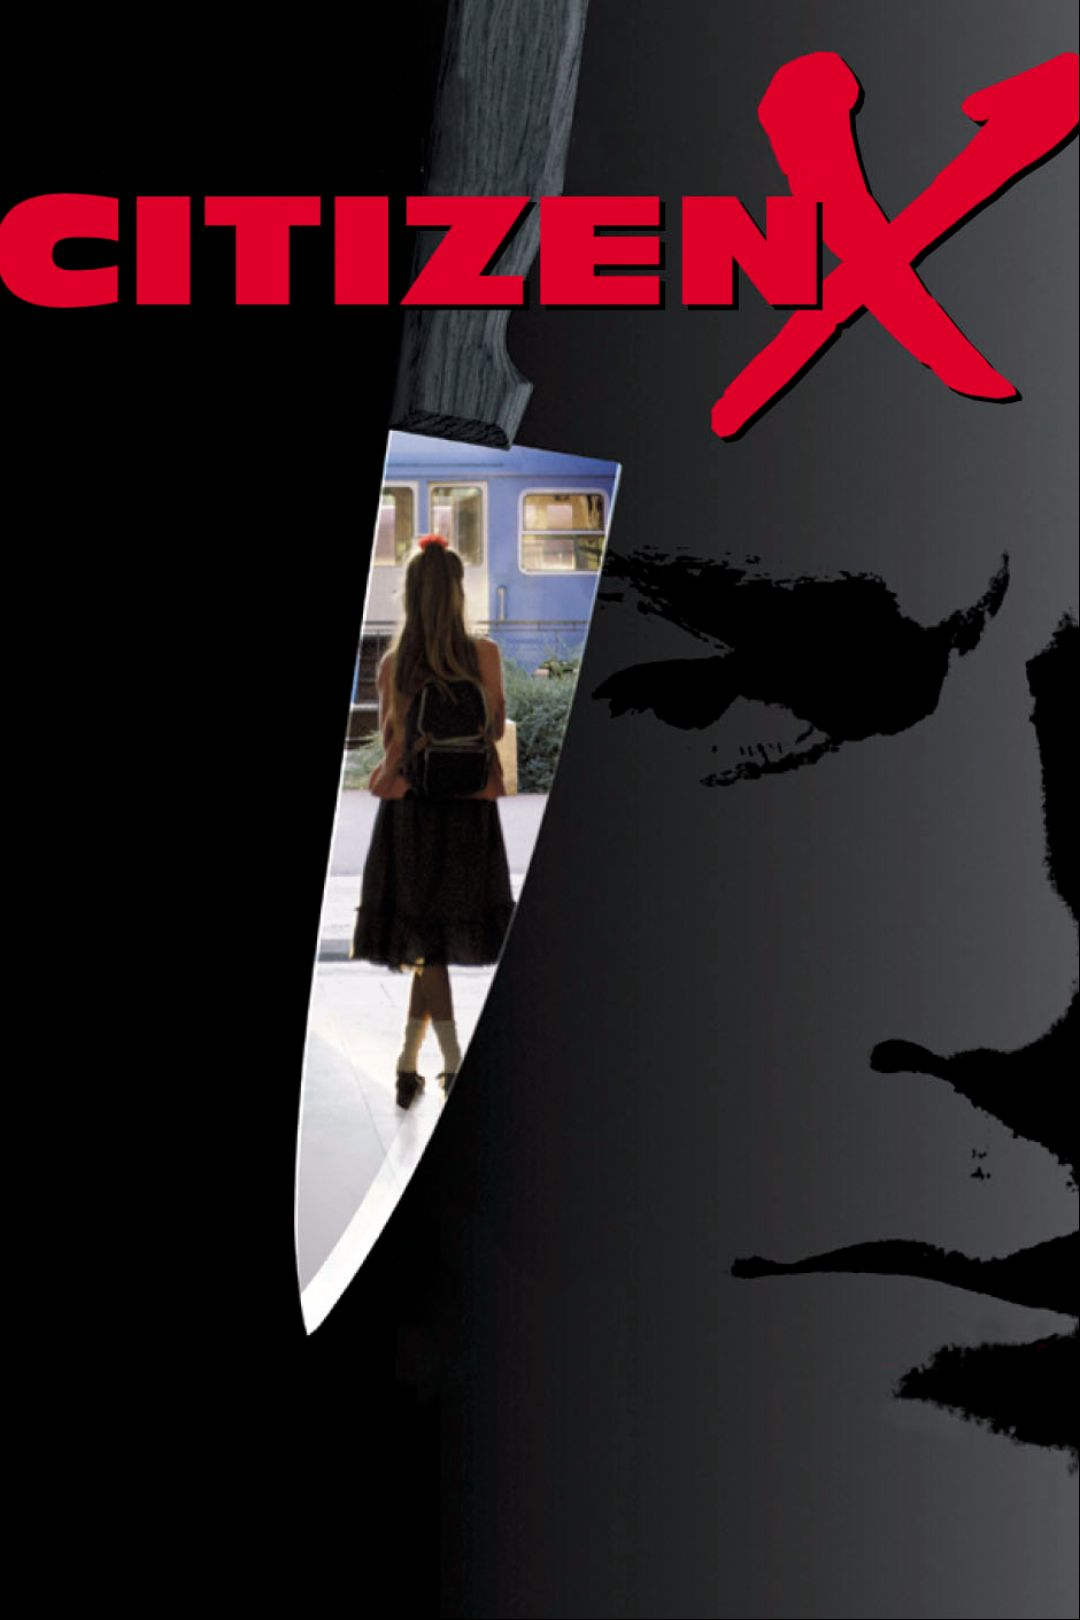 citizen x - Hbo Go Christmas Movies